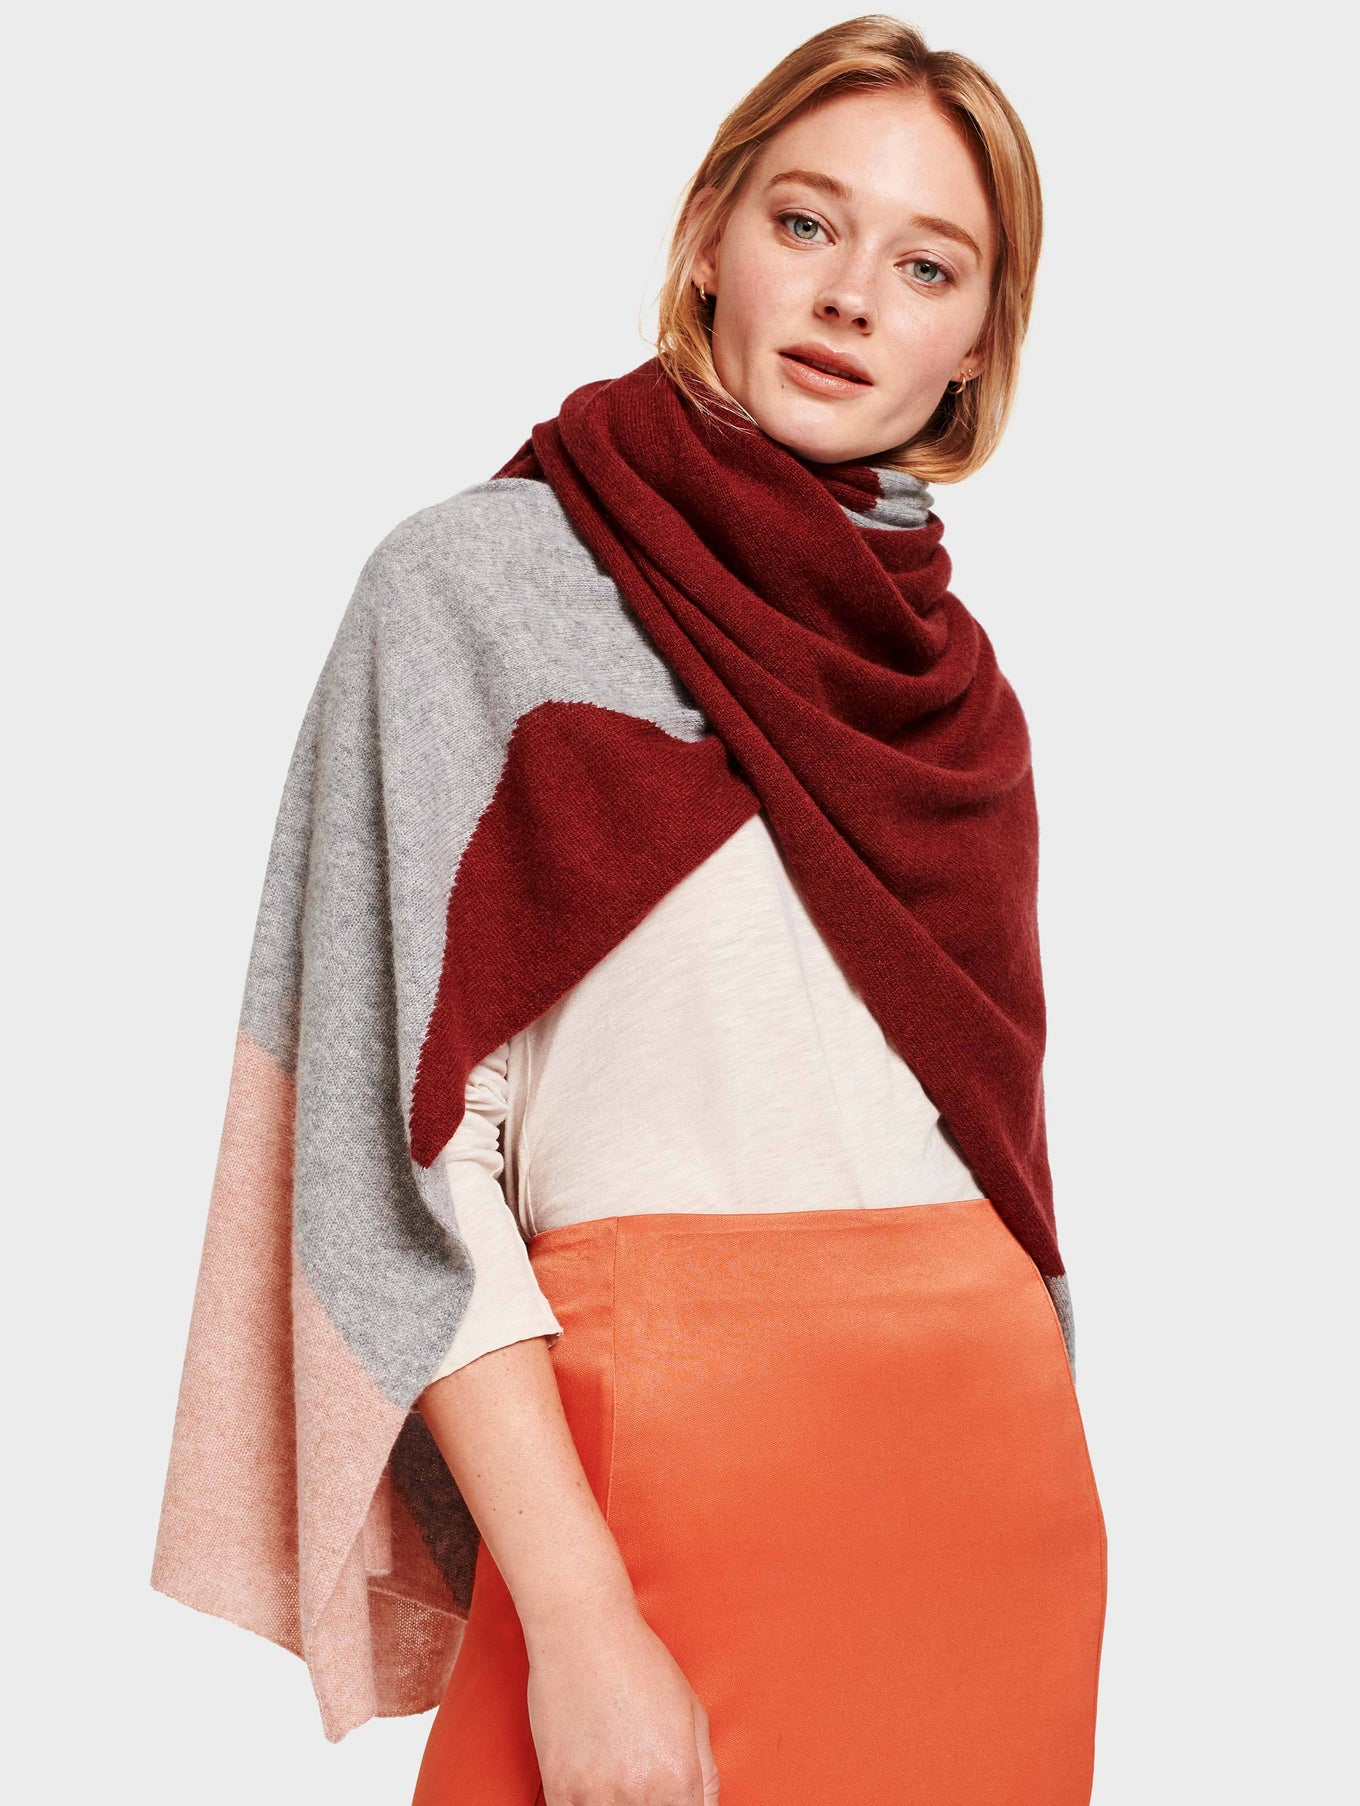 Cashmere Exploded Star Travel Wrap - Mulberry Multi - Image 1